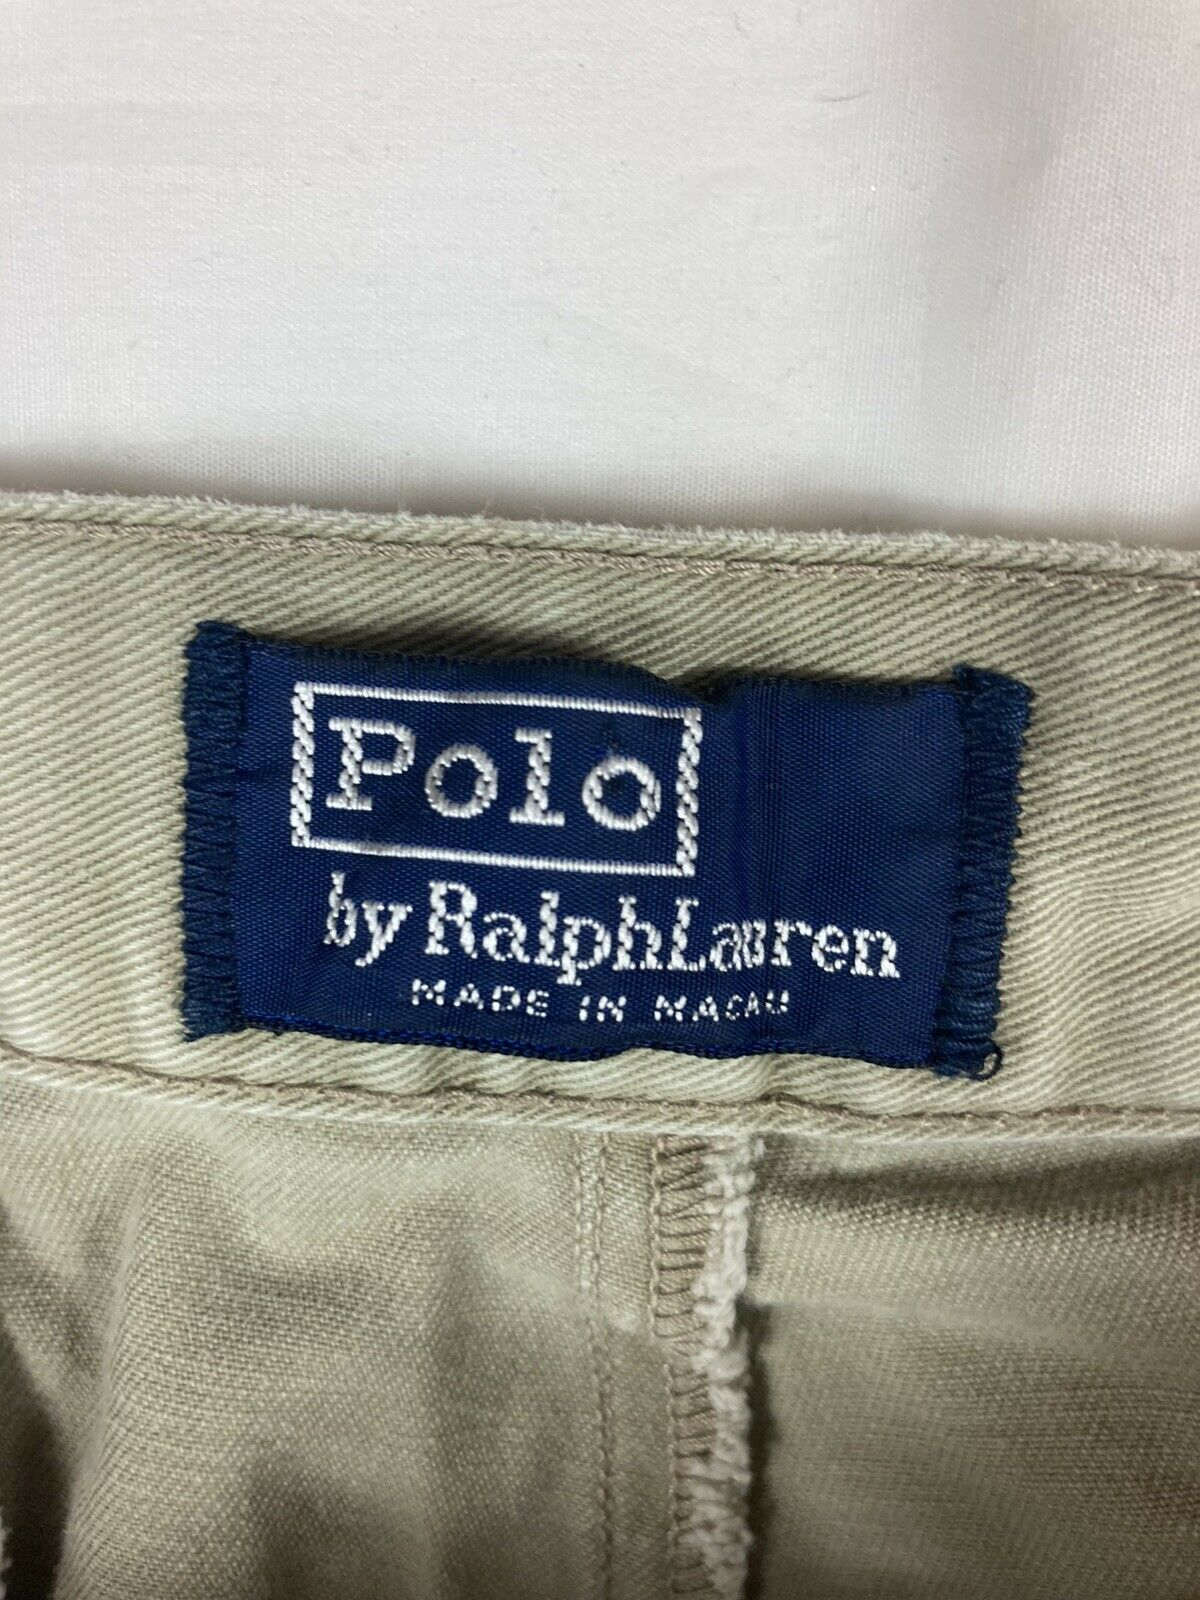 POLO RALPH LAUREN Shorts Chino Pleated 90s 80s VT… - image 3